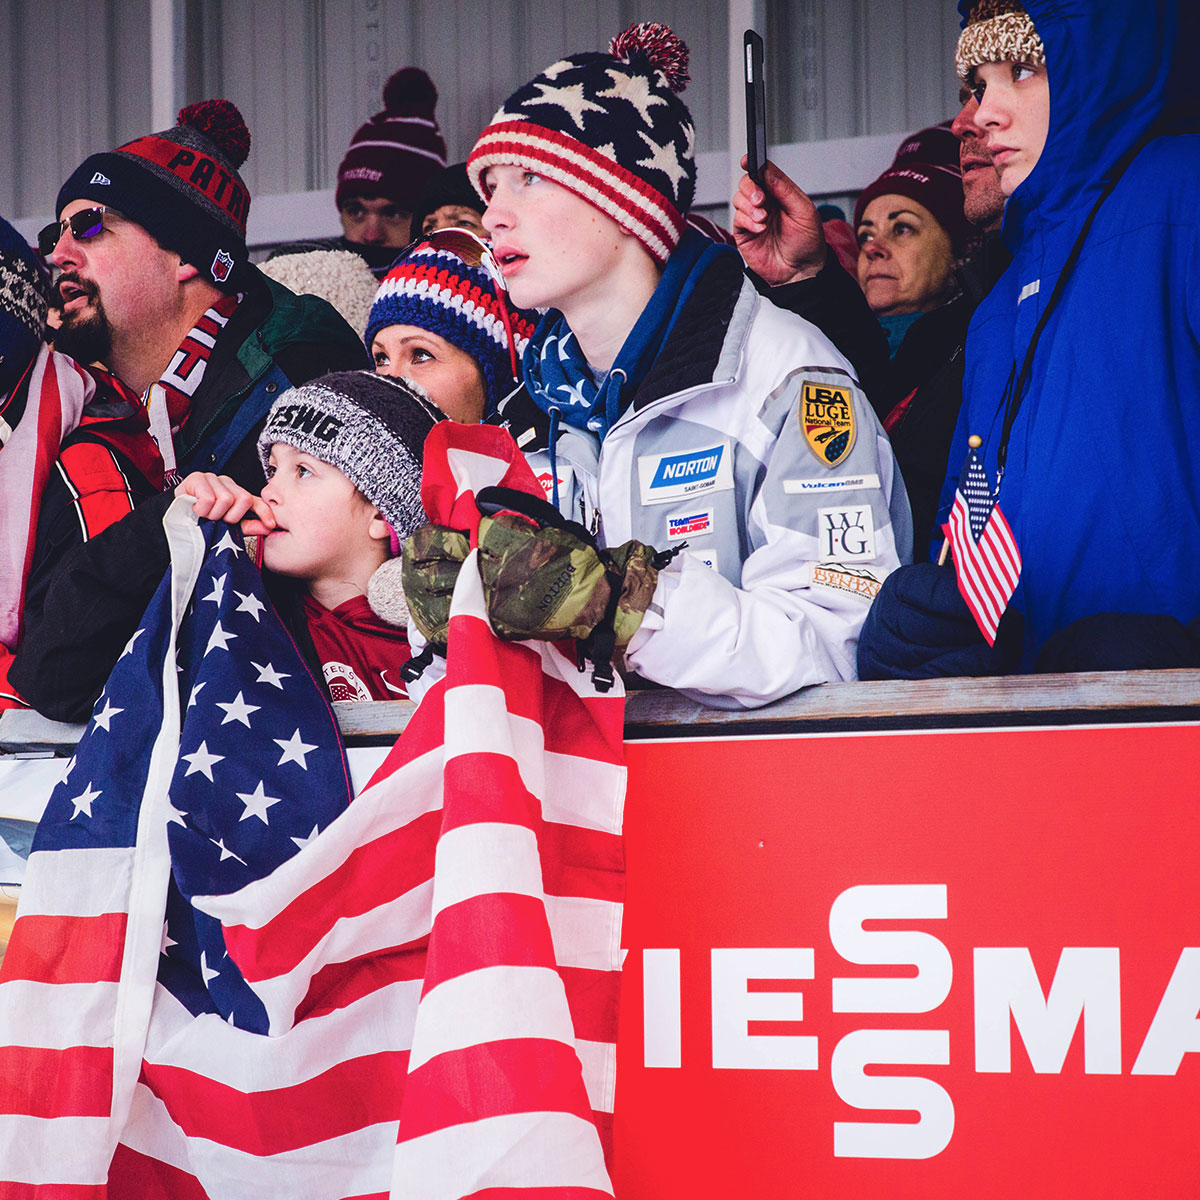 Excited Crowd at World Cup Luge